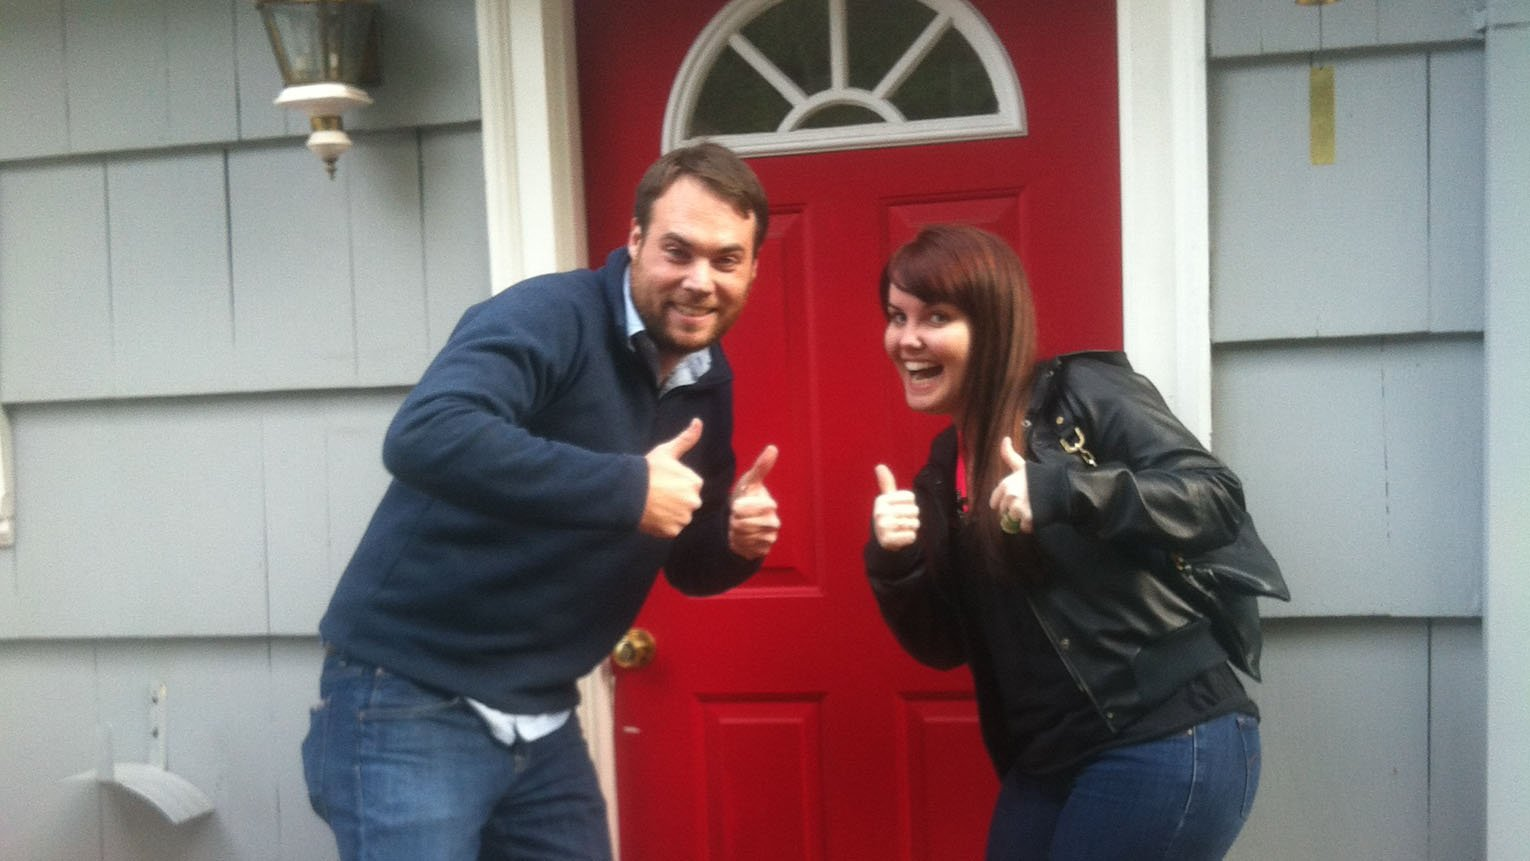 In front of our new house - 30 seconds before I proposed.